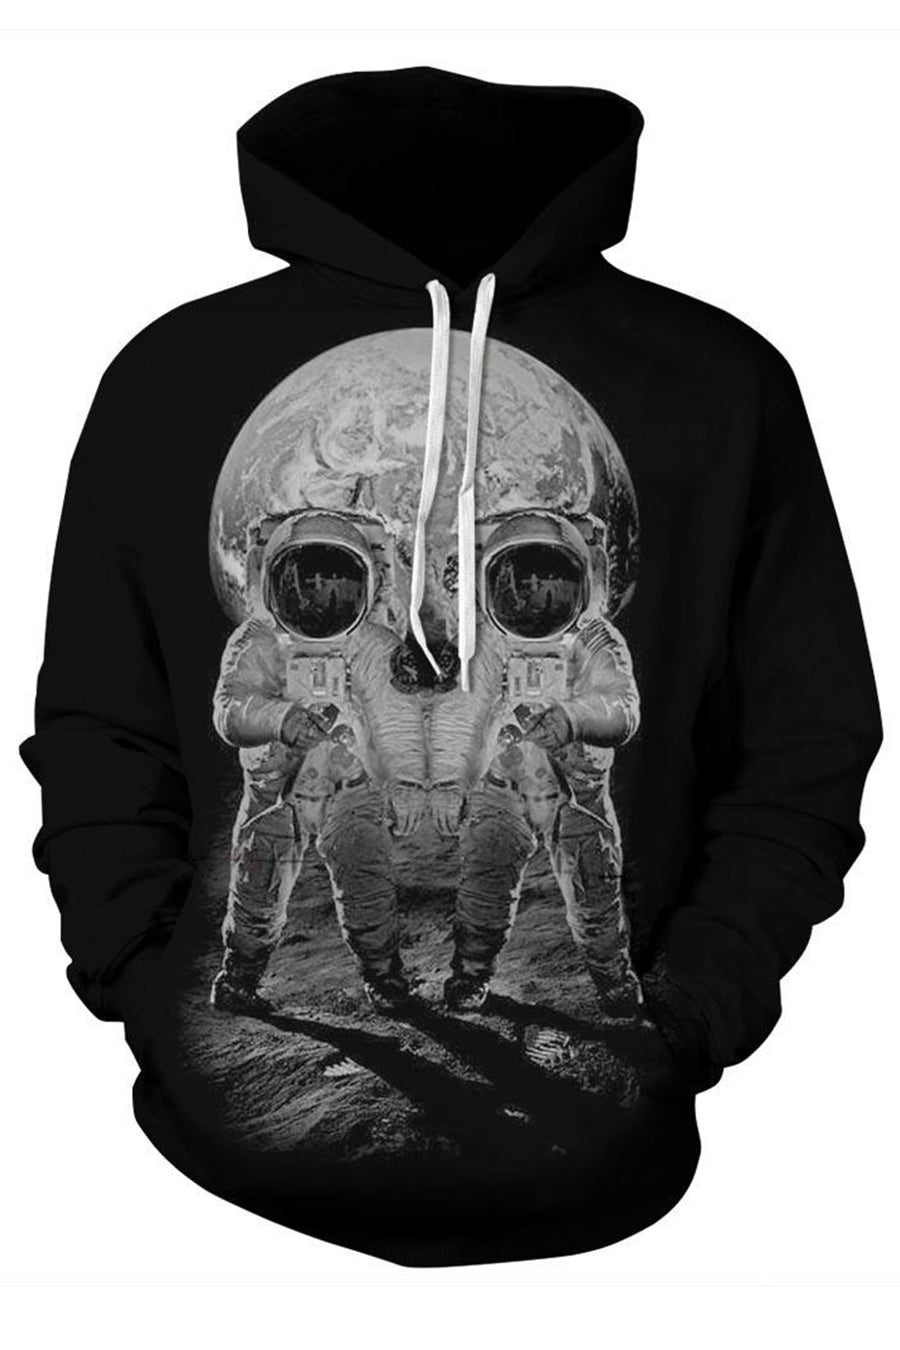 Skulled Moon 3D Hooded Sweater